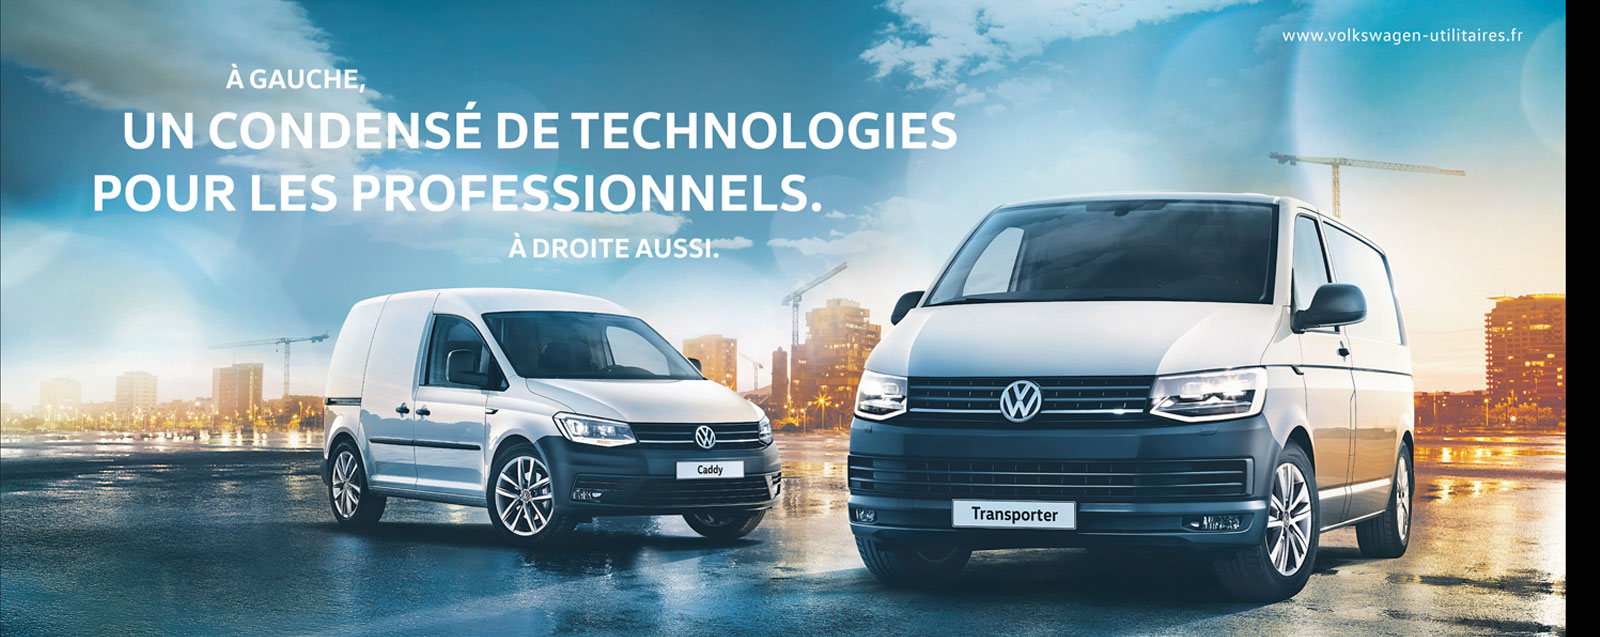 VEHICULES NEUFS<br>VW UTILITAIRES